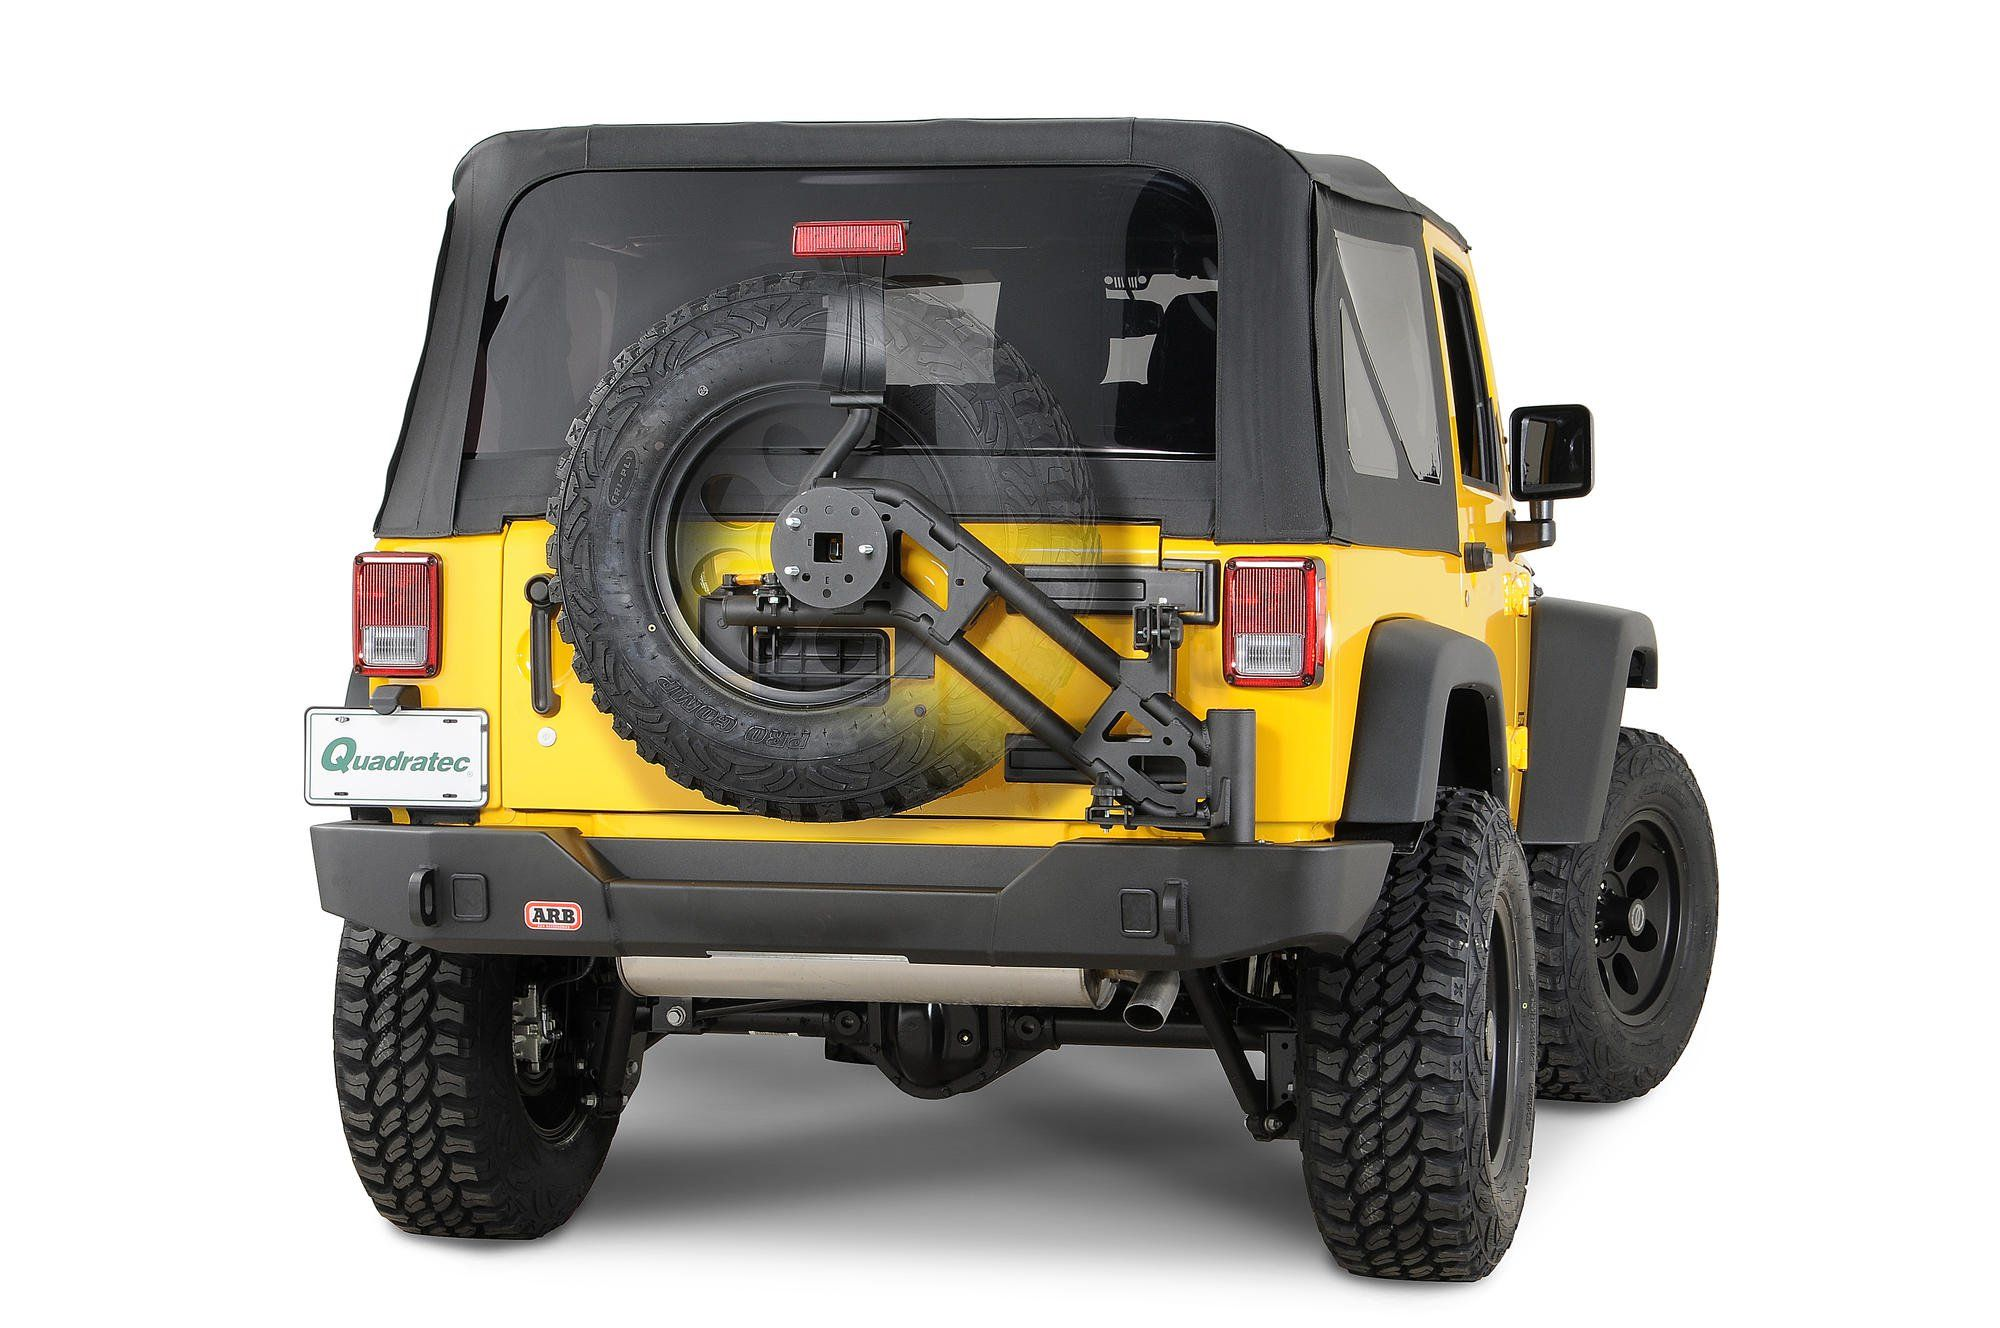 Delightful Modular Rear Bumper With Swing Away Tire Carrier For 07 15 Jeep® Wrangler  And